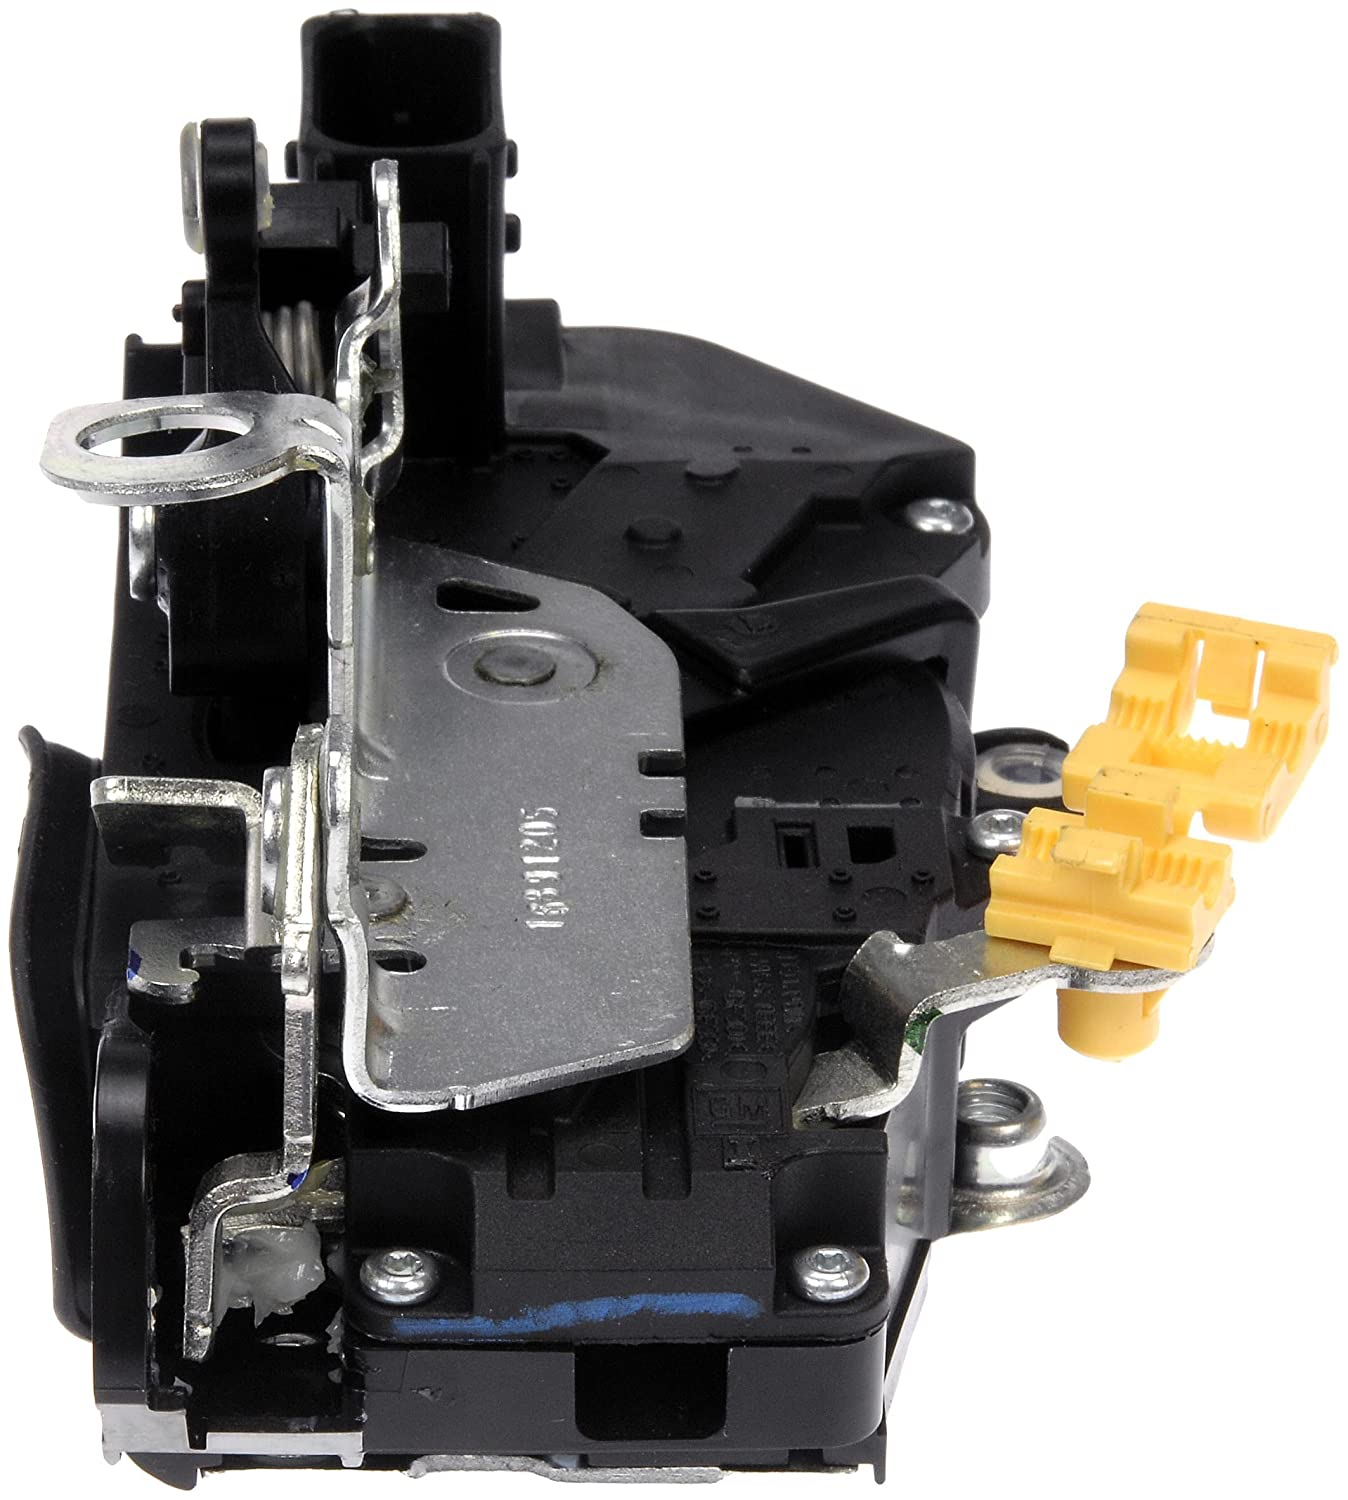 Amazon.com: Dorman 931-303 Front Drivers Side Door Lock Actuator Motor for  Select Chevrolet/GMC / Cadillac Trucks: Automotive